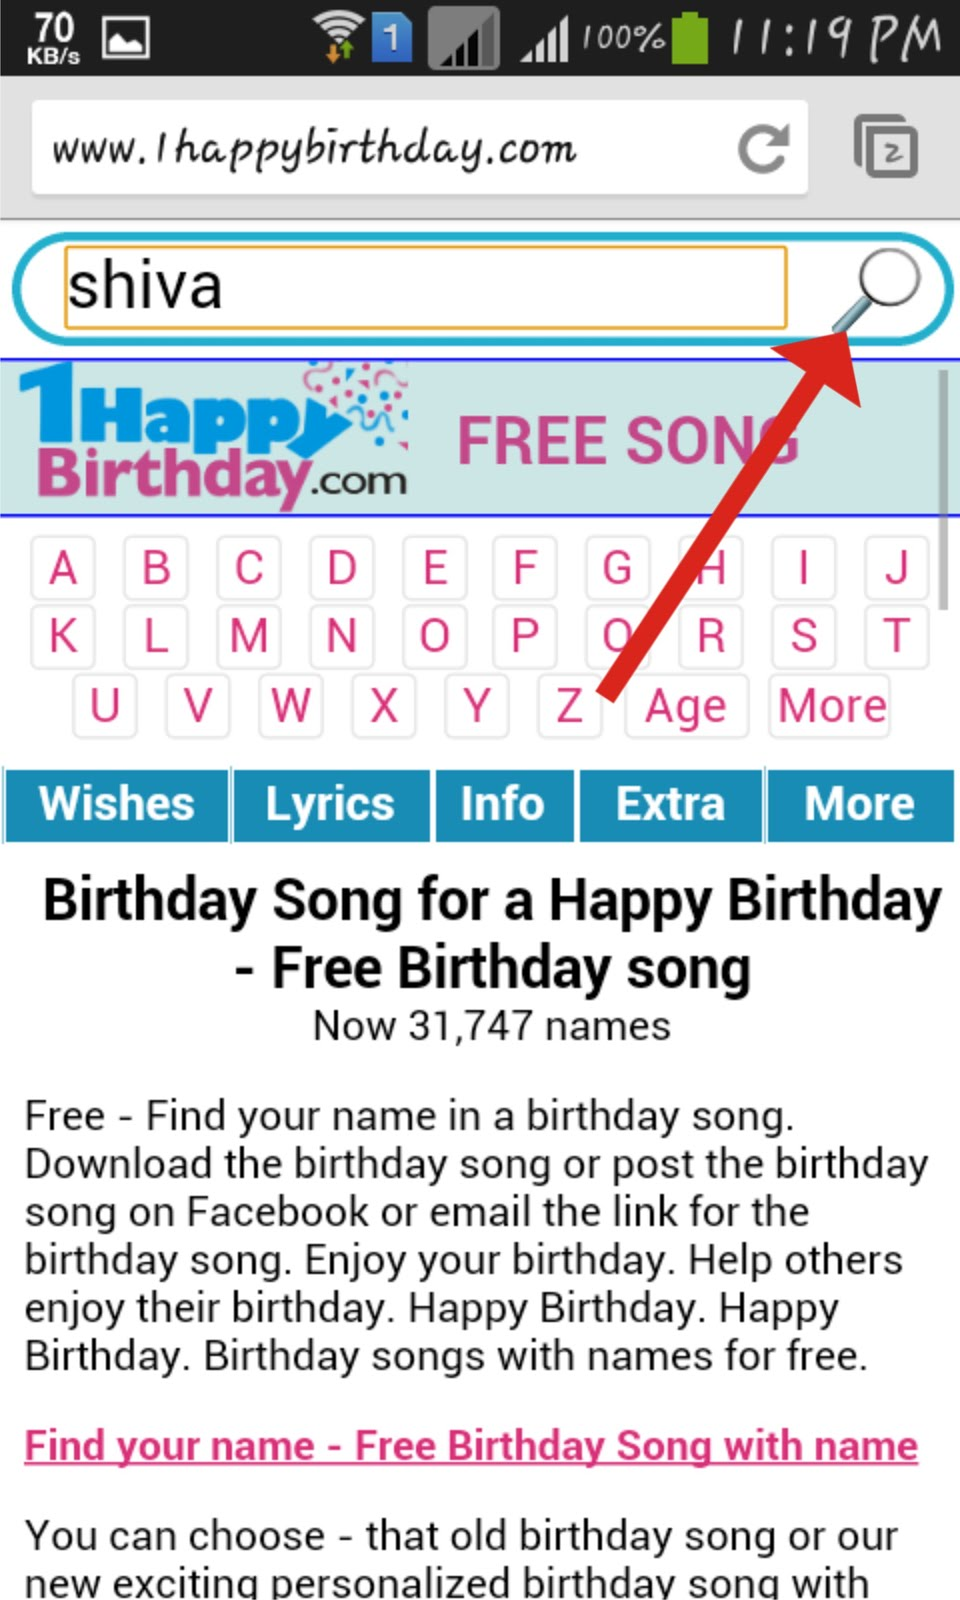 Apne Naam Ka Birthday Song Kaise Banaye Ya Download Kare